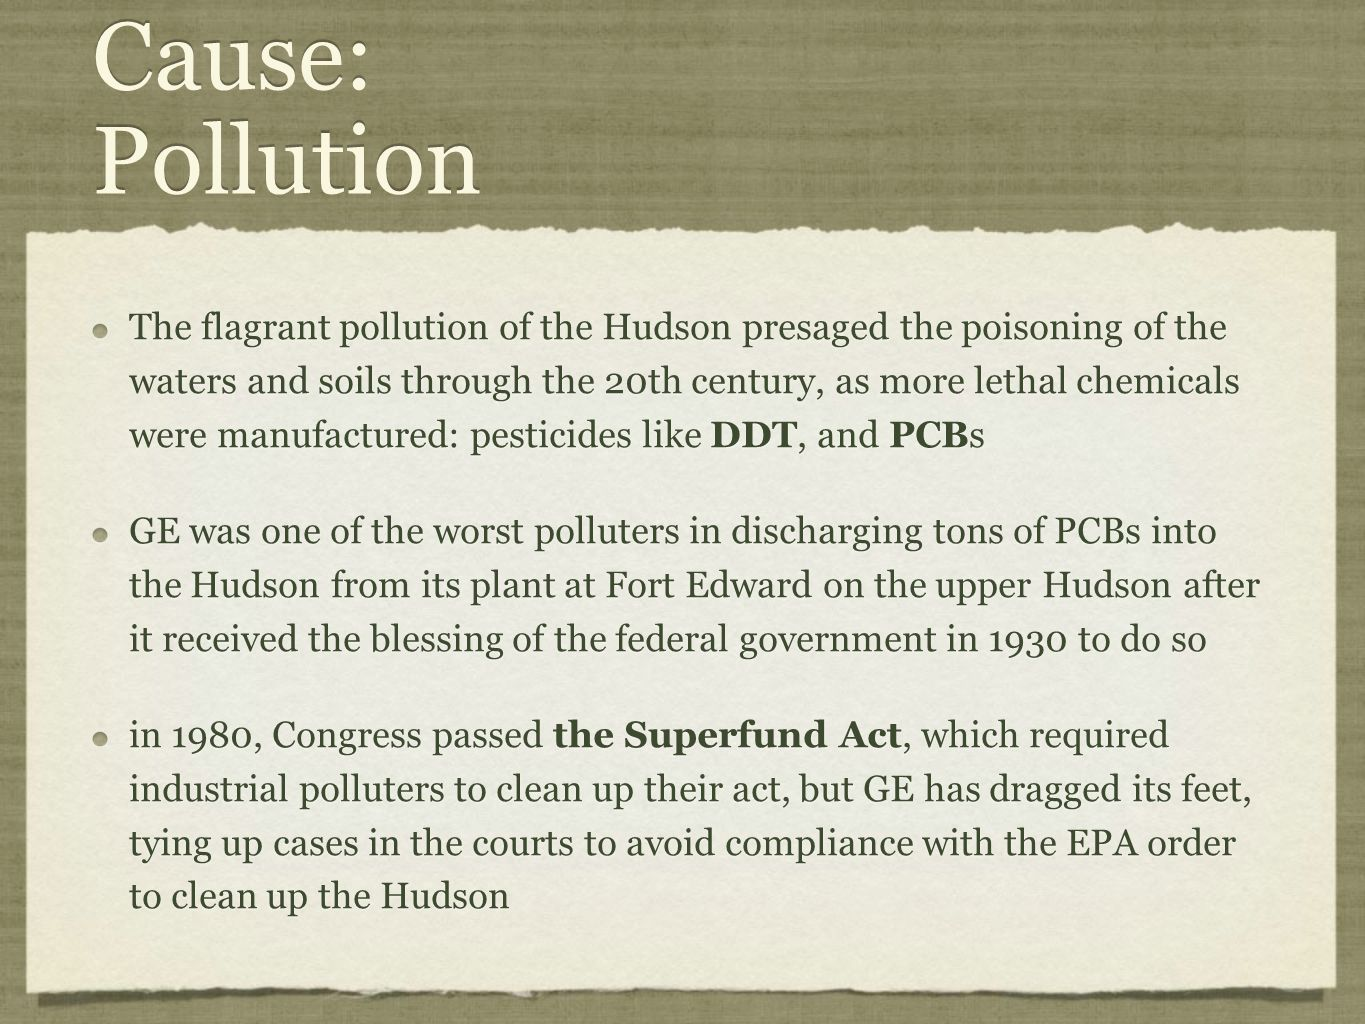 Cause: Pollution The flagrant pollution of the Hudson presaged the poisoning of the waters and soils through the 20th century, as more lethal chemical